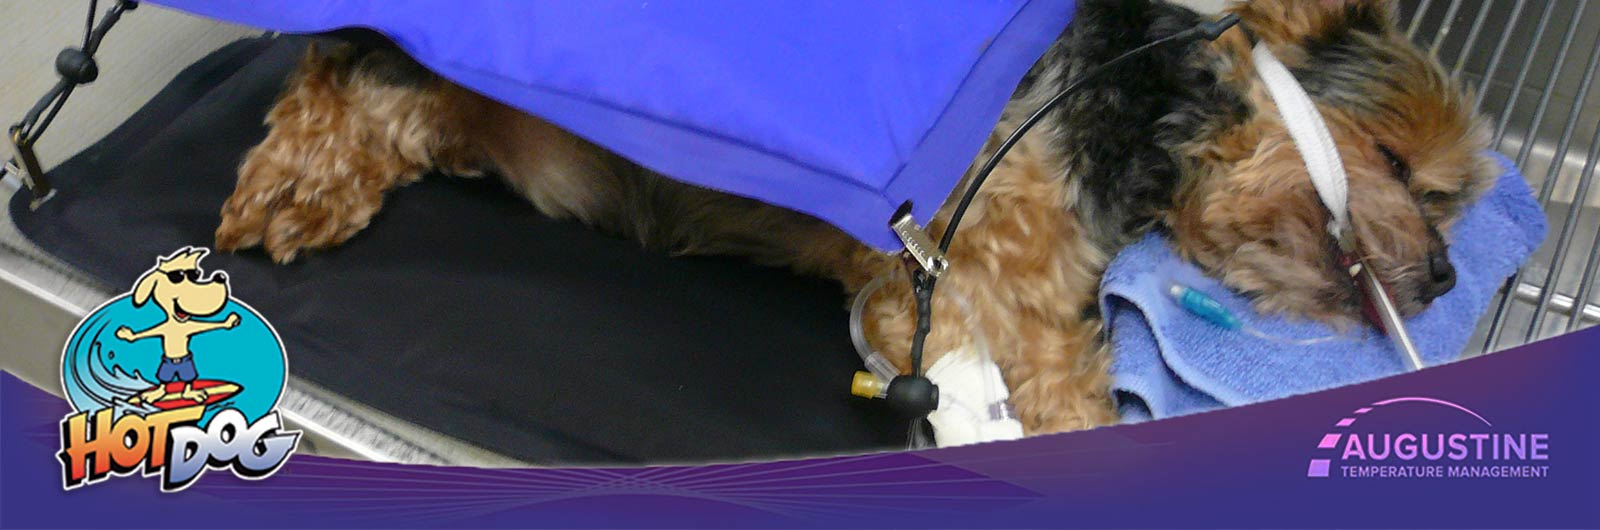 Hot Dog Patient Warming System Veterinary